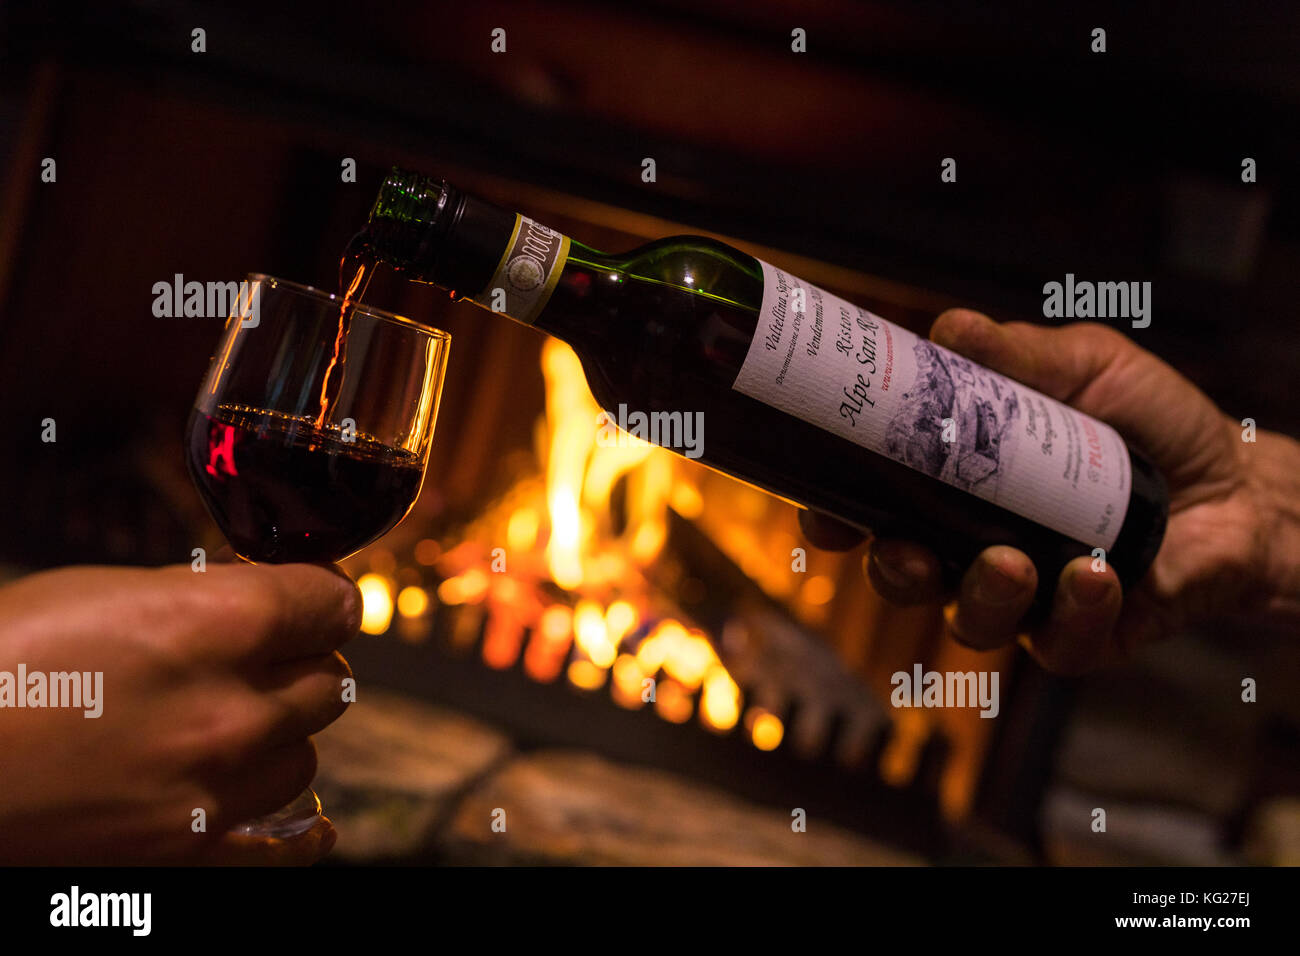 Bottle and glass of wine in front of fireplace, San Romerio Alp, Brusio, Poschiavo Valley, Canton of Graubunden, - Stock Image